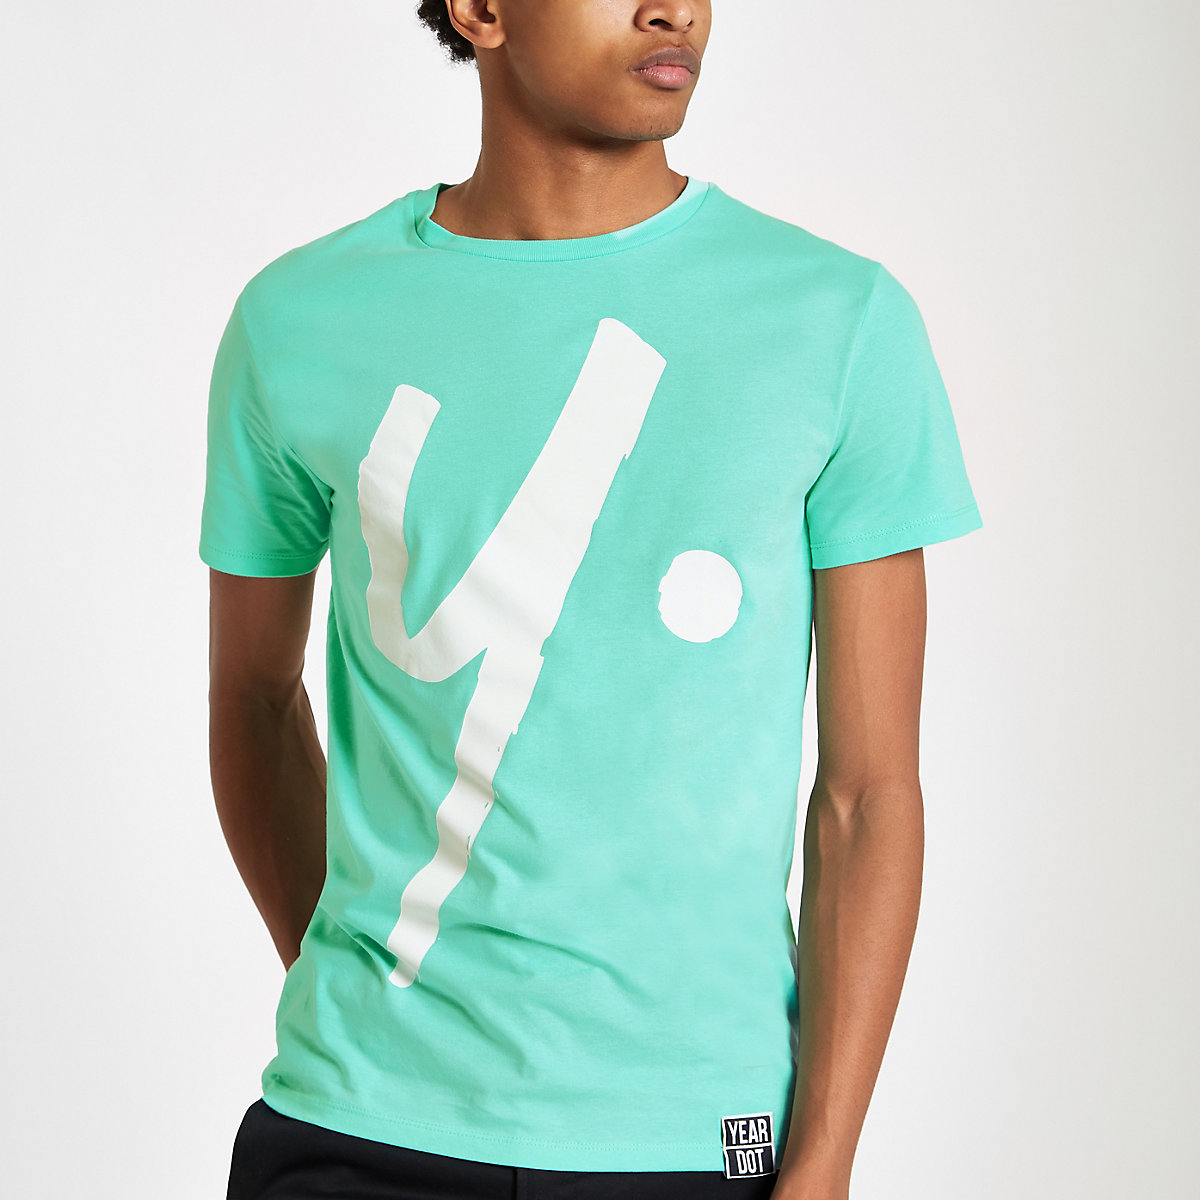 Year Dot mint green logo T-shirt